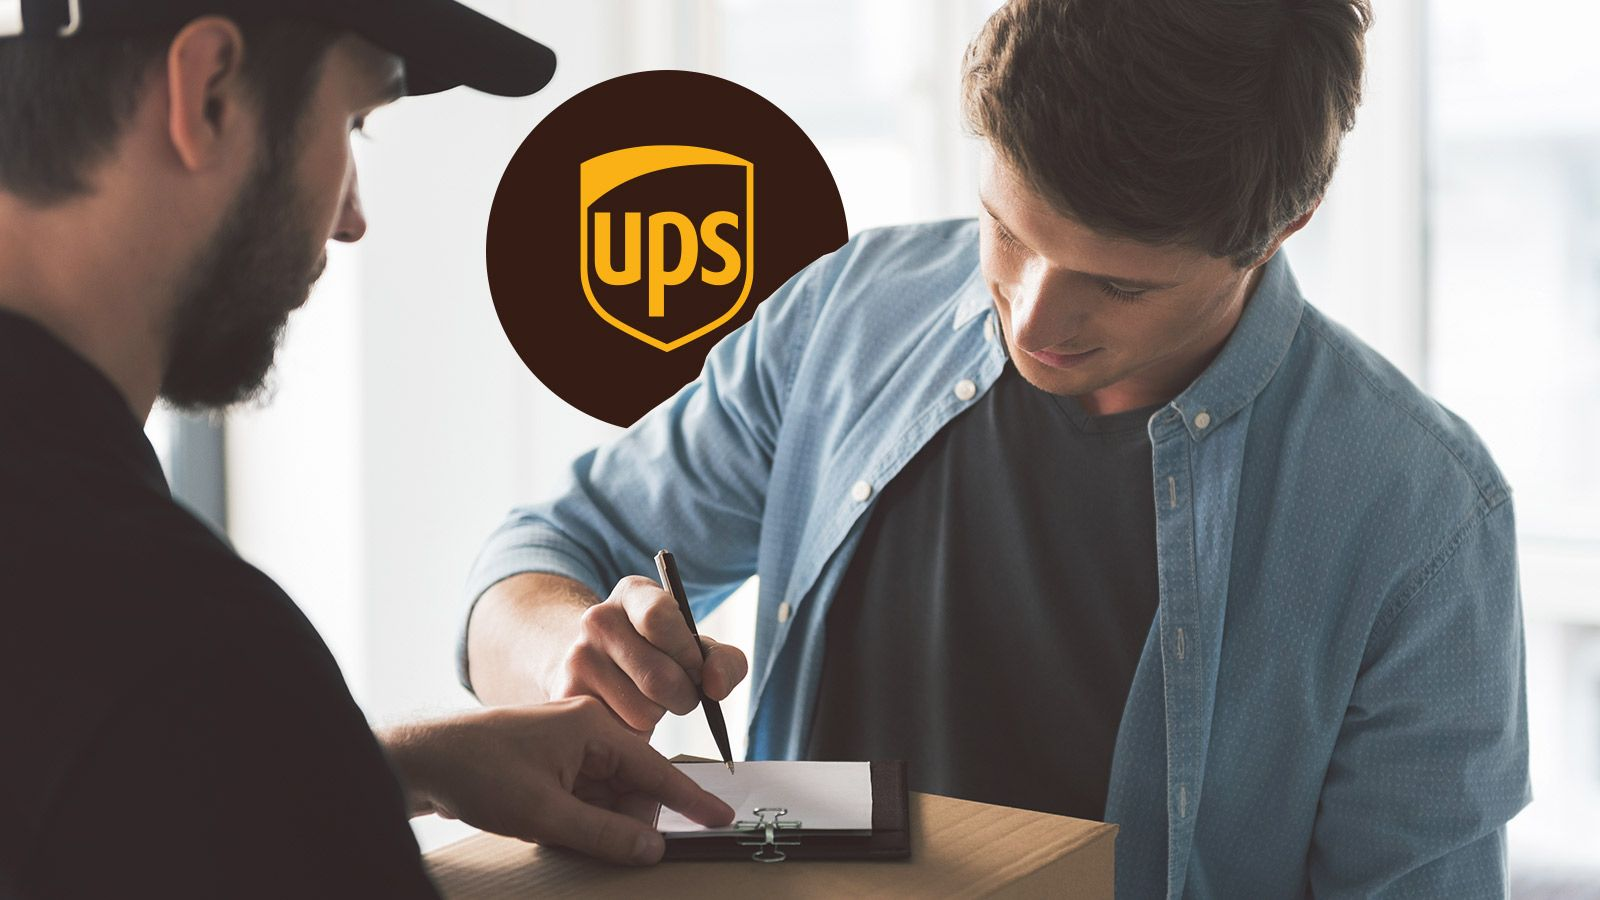 How To Use UPS Signature Required